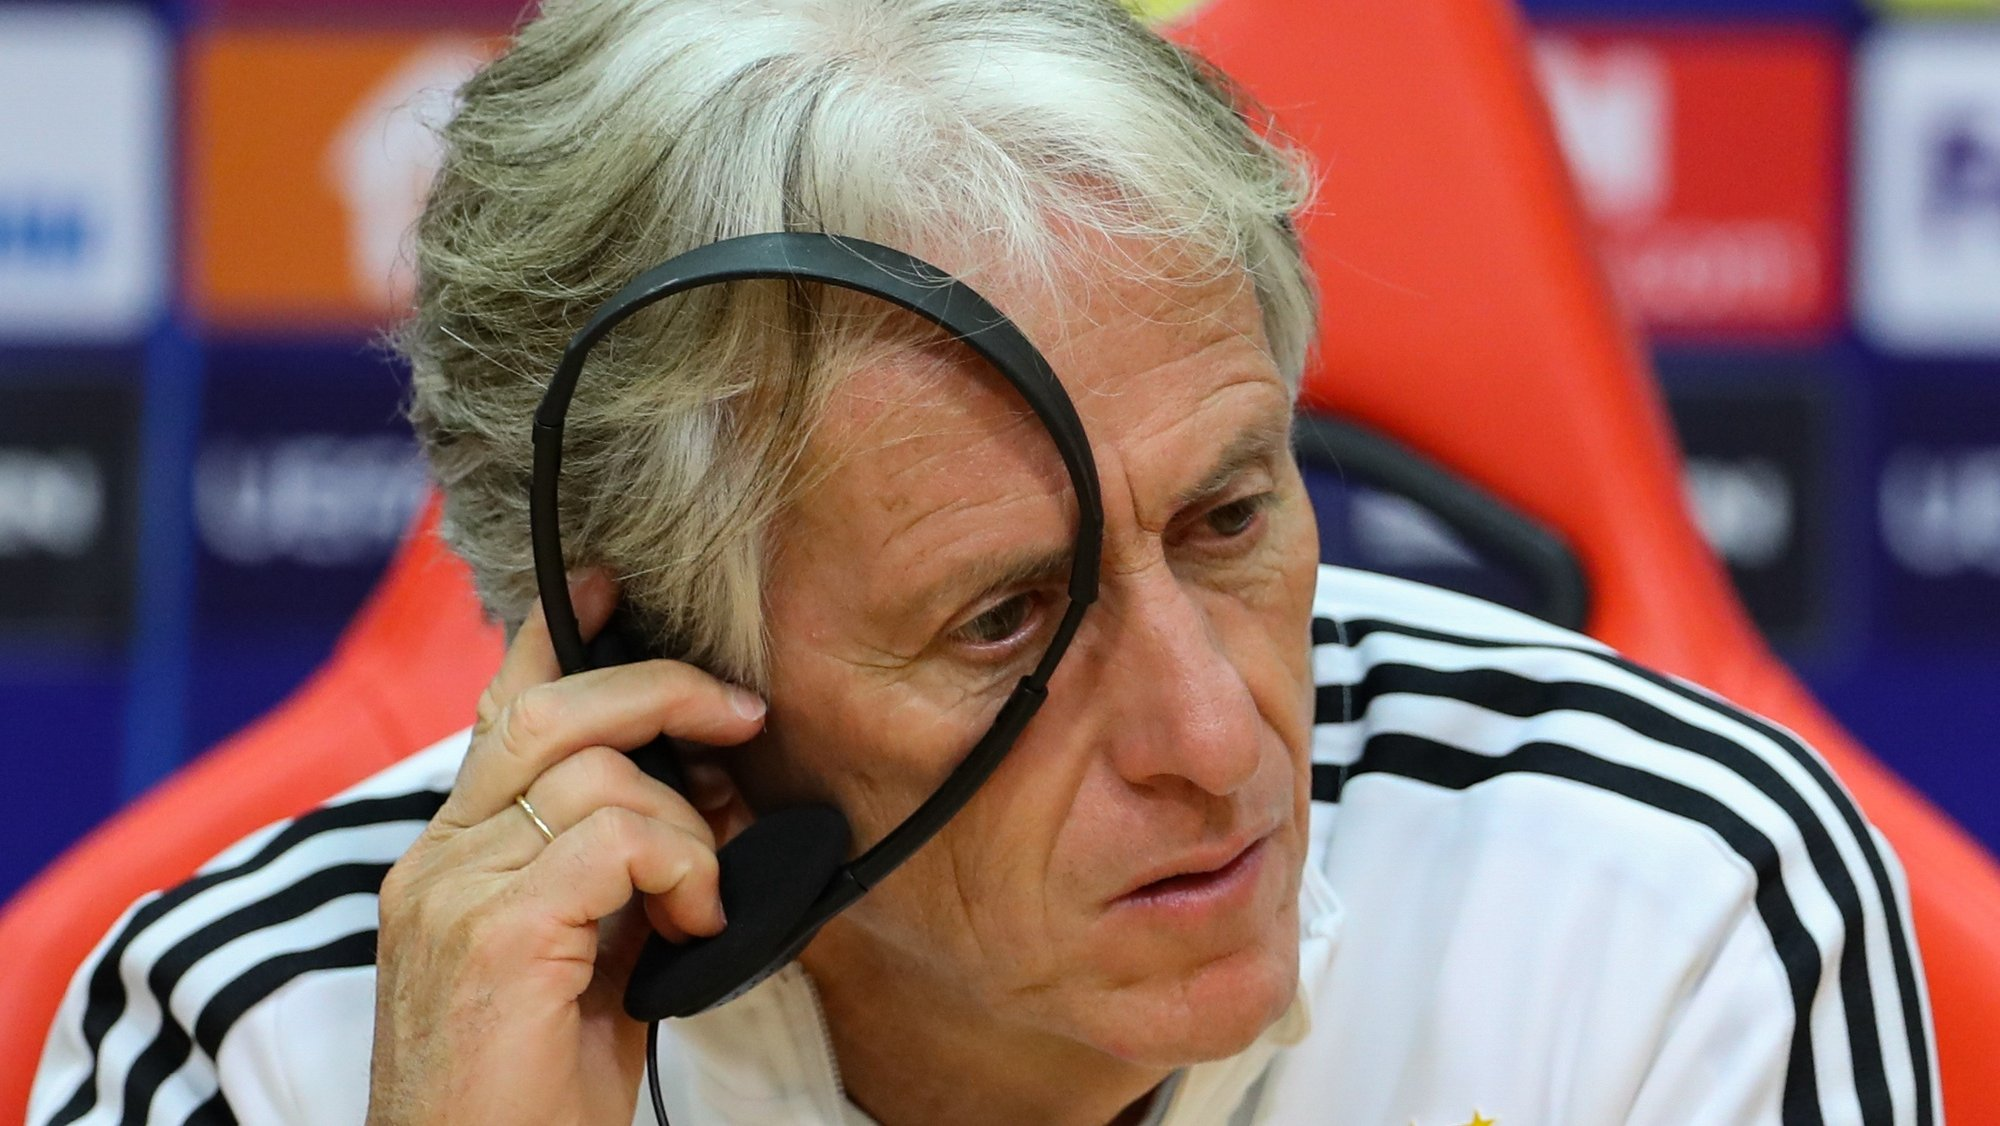 Benfica's head coach Jorge Jesus attends a press conference at Benfica's training camp in Seixal, Portugal, 19 October  2021. Benfica Lisbon will face Bayern Munich in their UEFA Champion League group E soccer match on 20 October 2021. ANTONIO COTRIM/LUSA